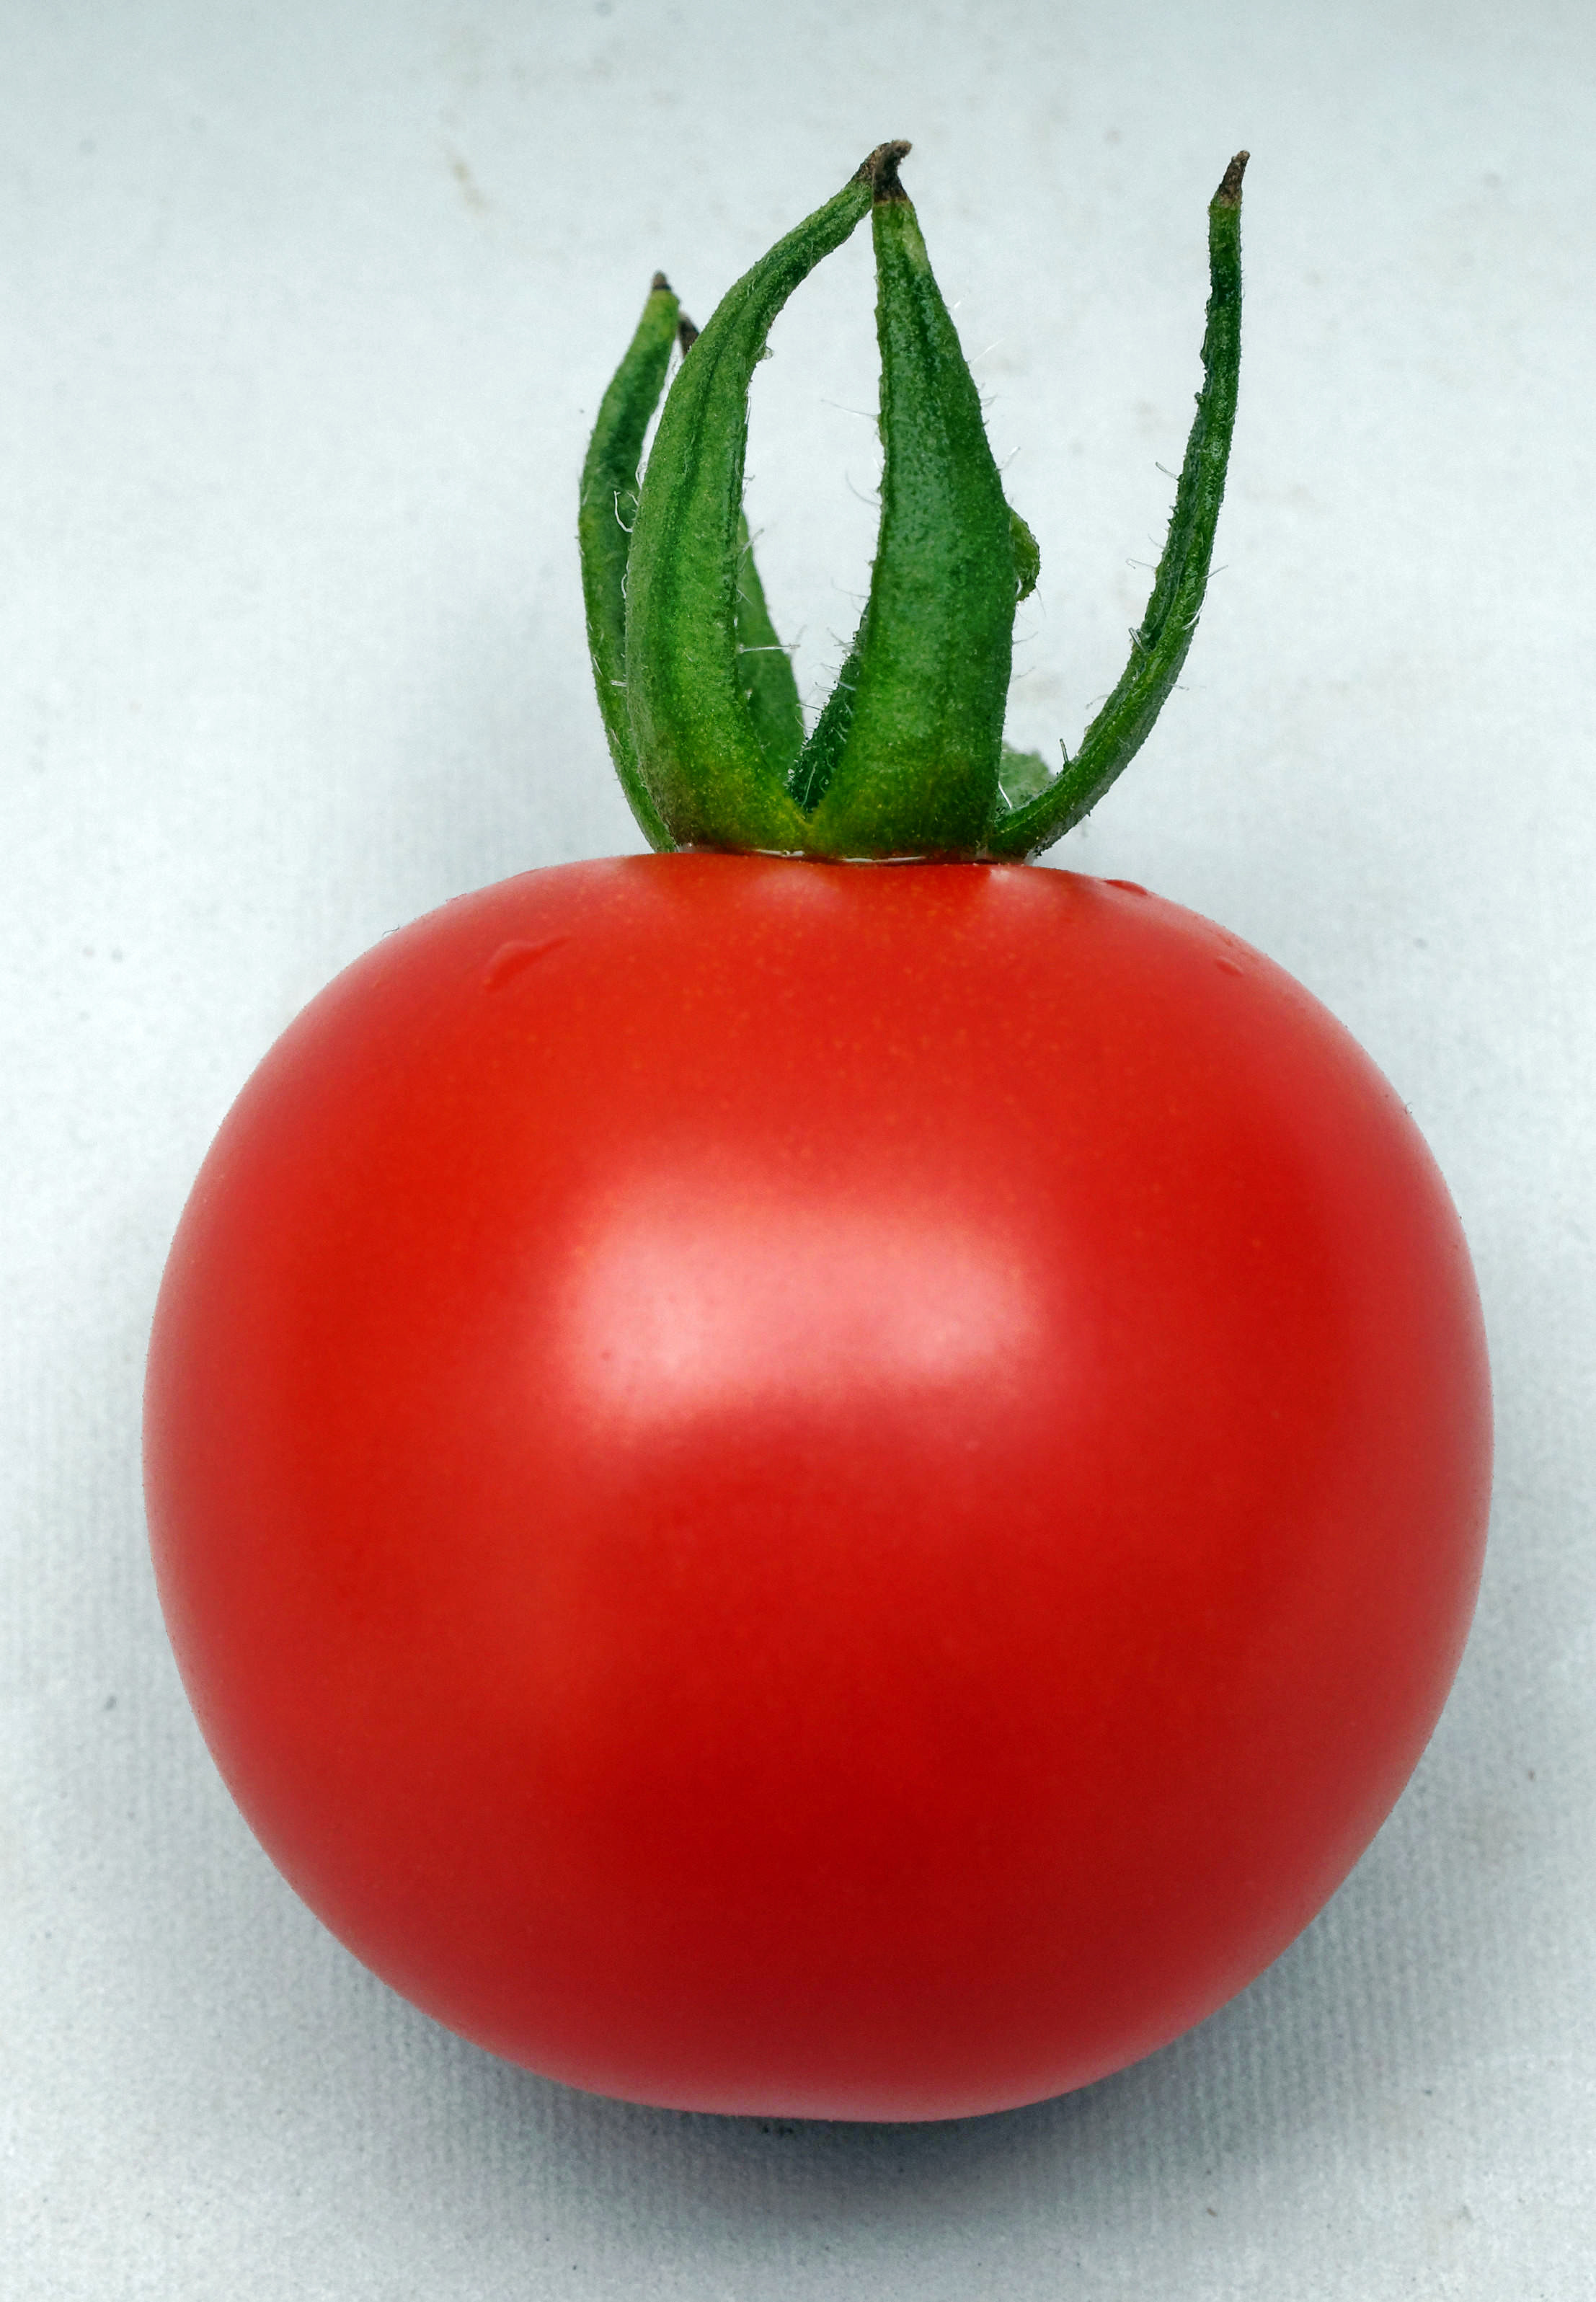 This should be Tomato.jpeg.  Is it missing?